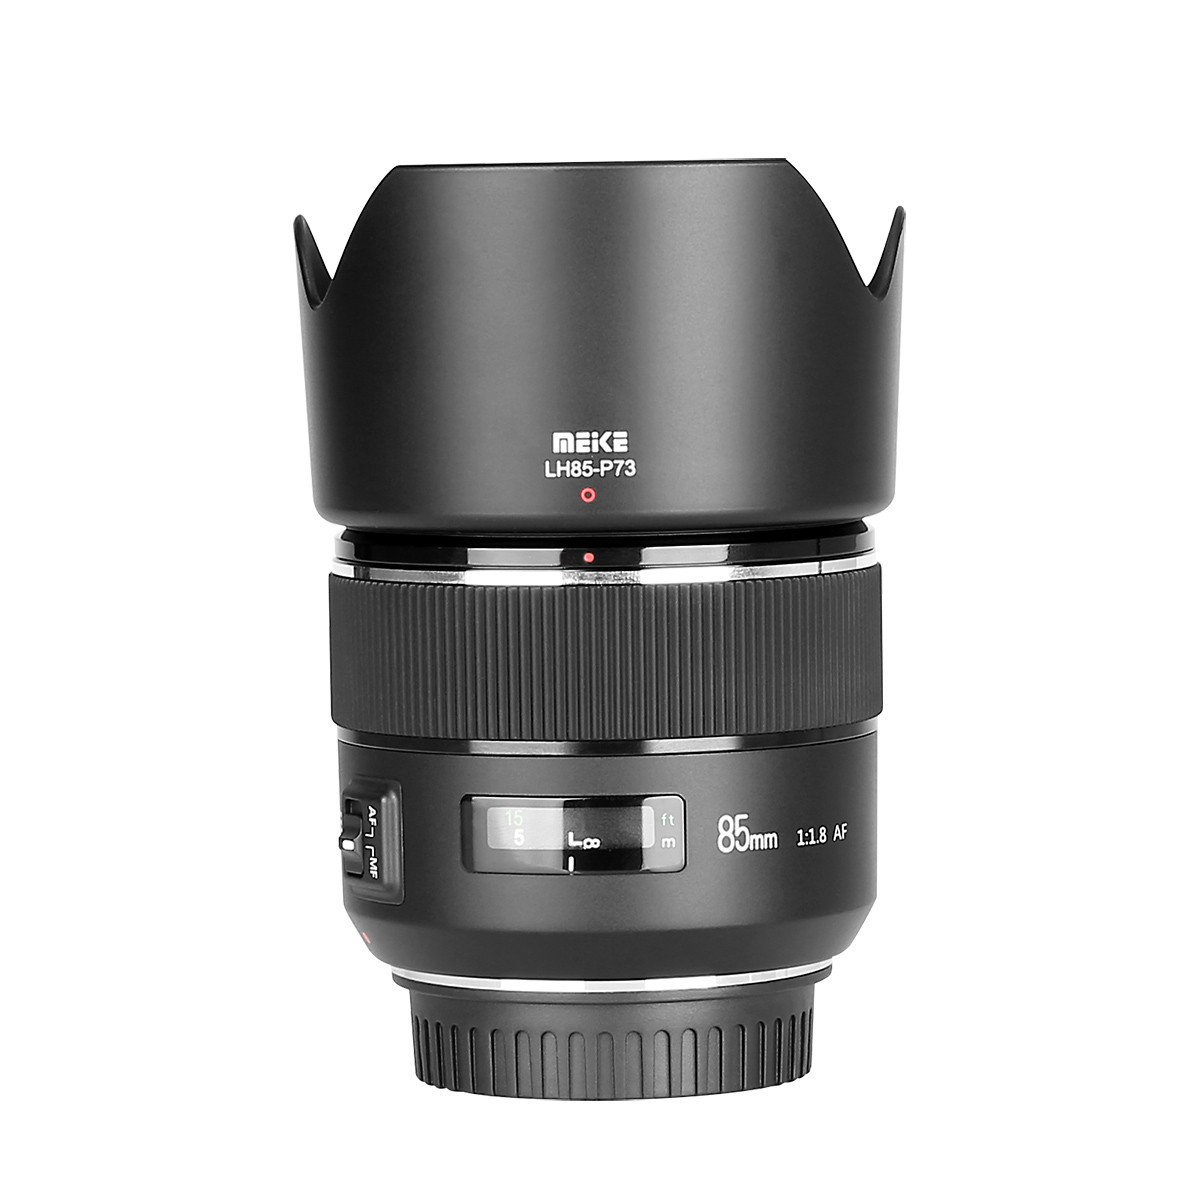 Meike 85mm F/1.8 Auto Focus Full Frame Aspherical Medium Telephoto Portrait Prime Lens for Canon EOS EF Mount DSLR Cameras image